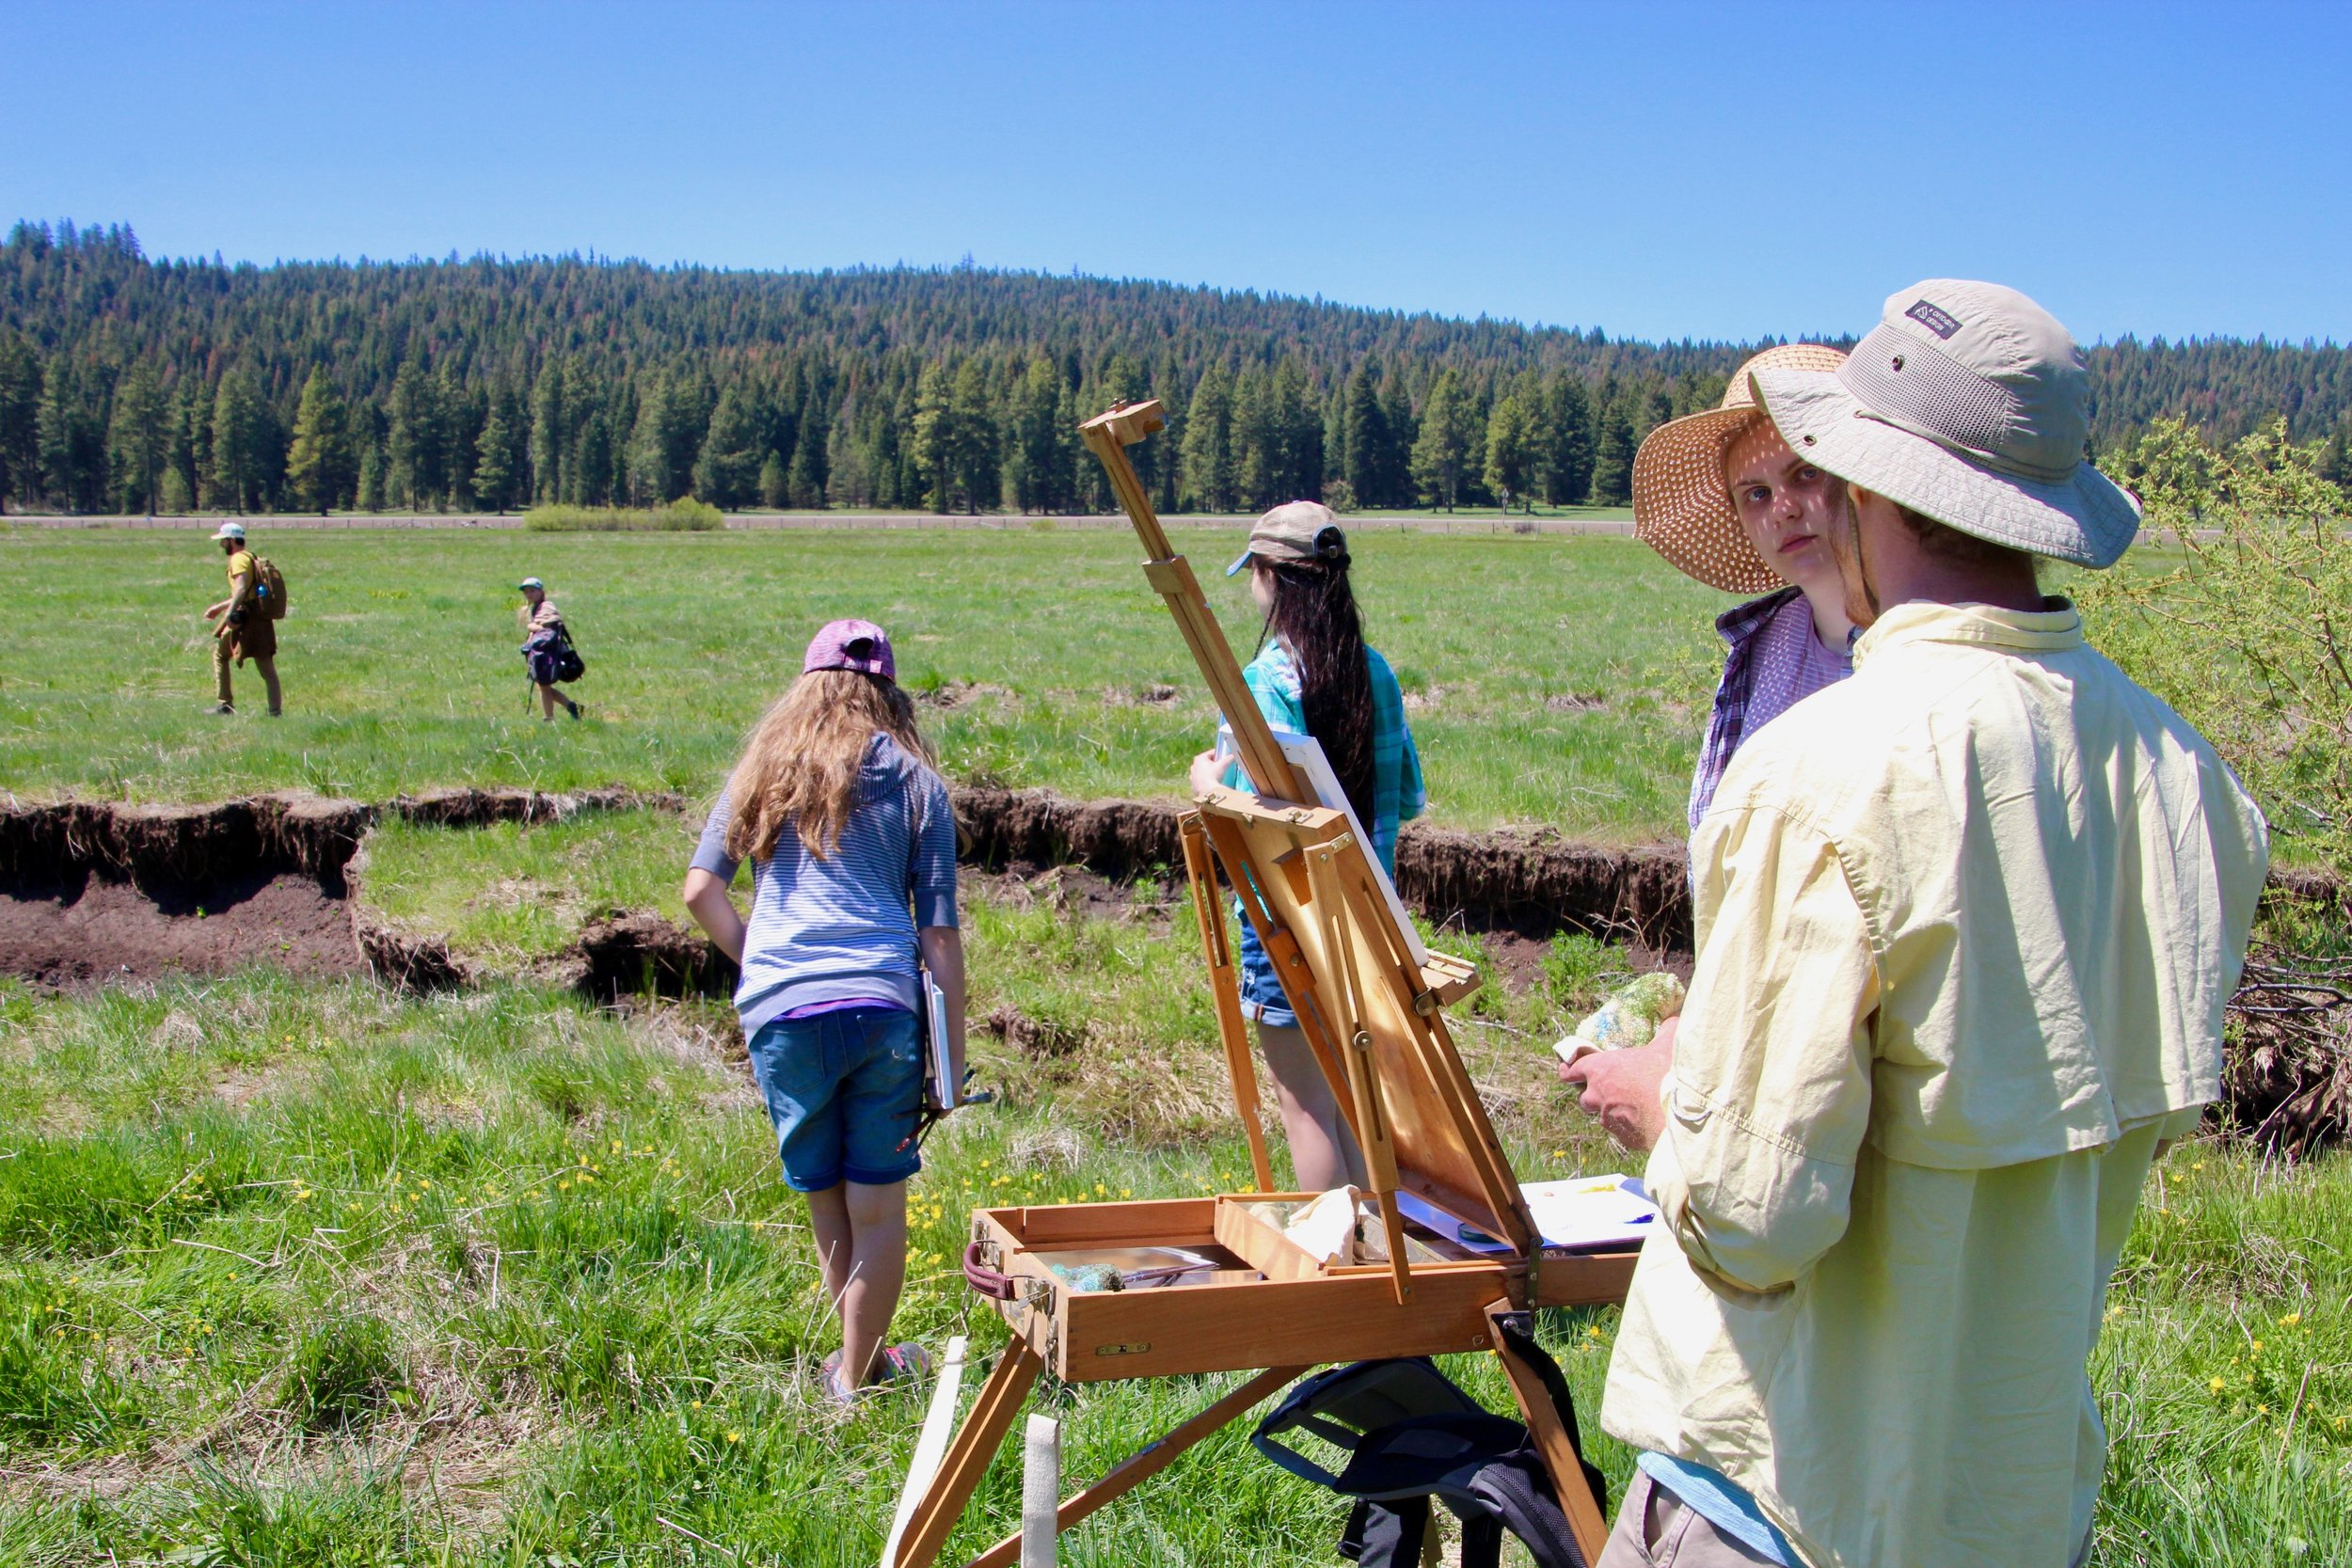 Along the eroded banks of the highly degraded Dead Indian Creek, artist Diamond Ferraiullo discusses landscape painting with HS Senior, while a photography group explores the meadow in the distance.